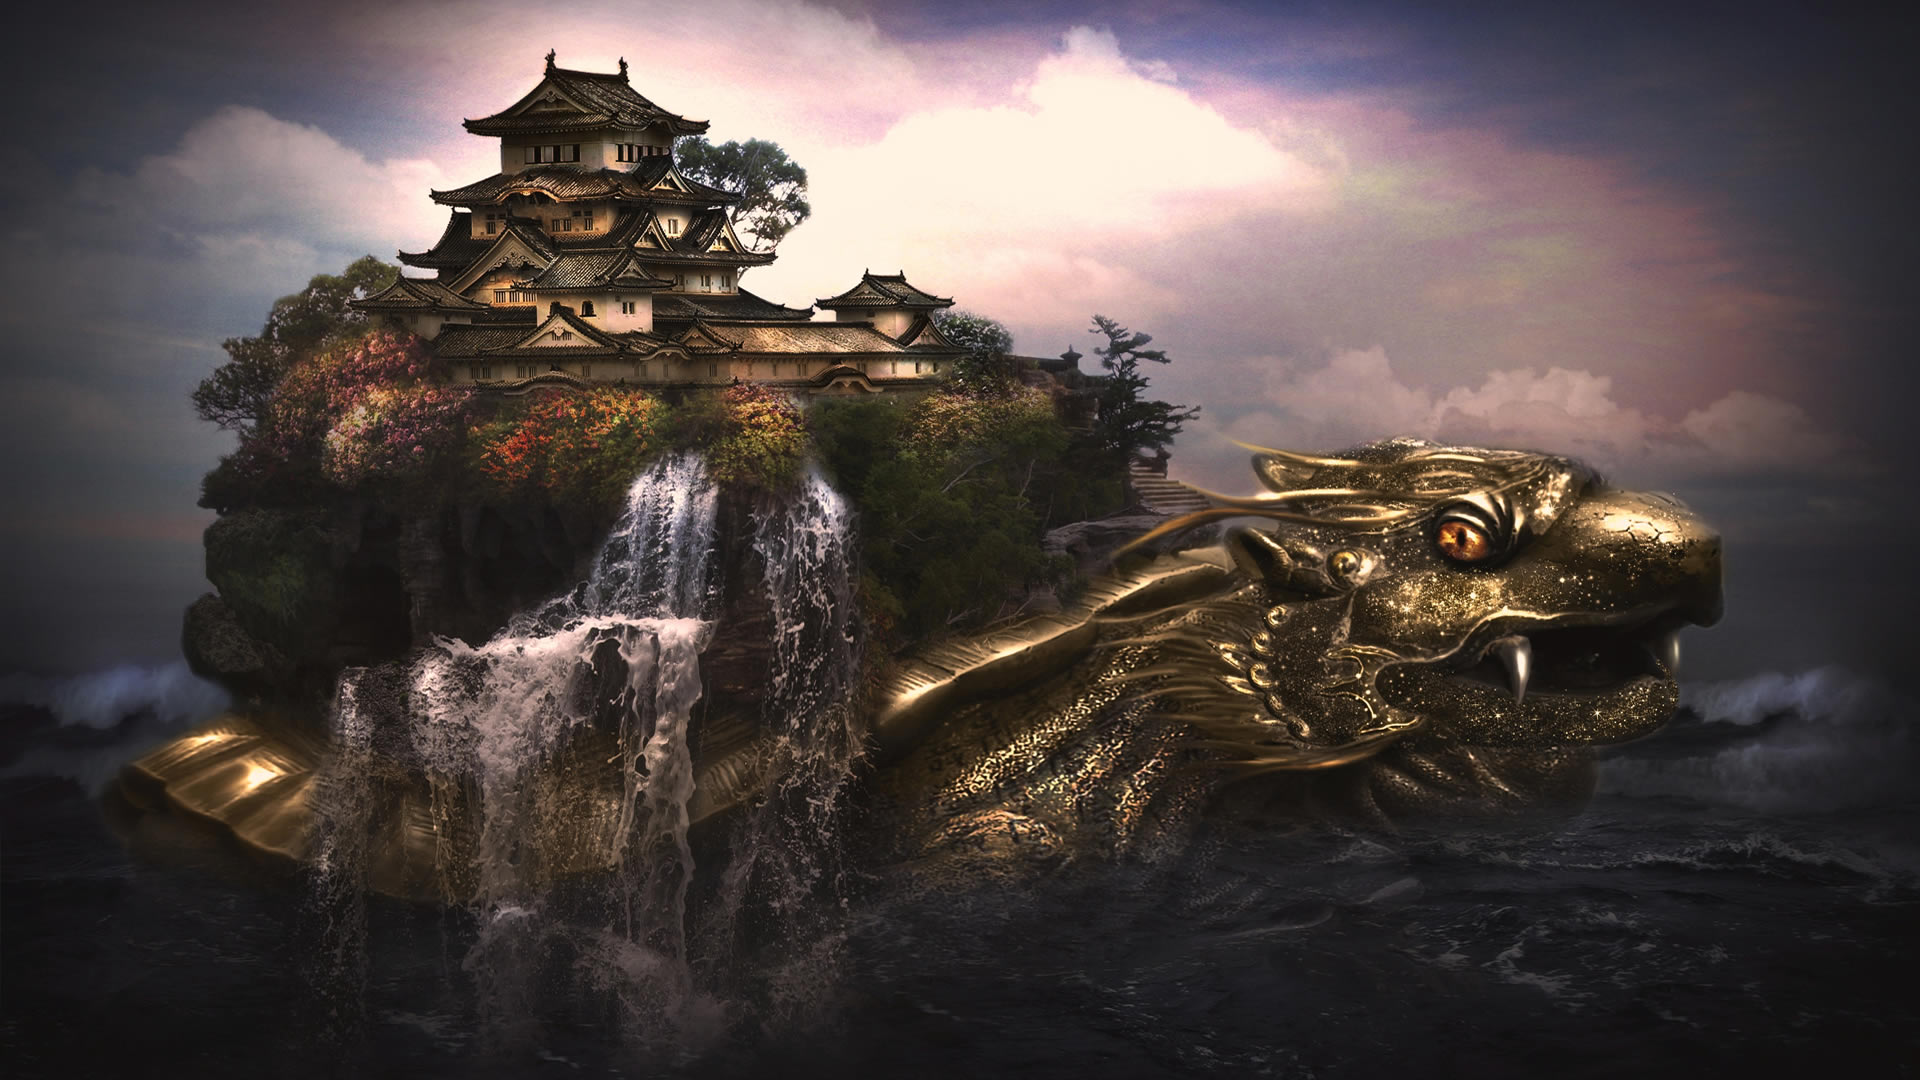 Castle And Golden Dragon Wallpaper 9797 Wallpaper Wallpaper hd 1920x1080